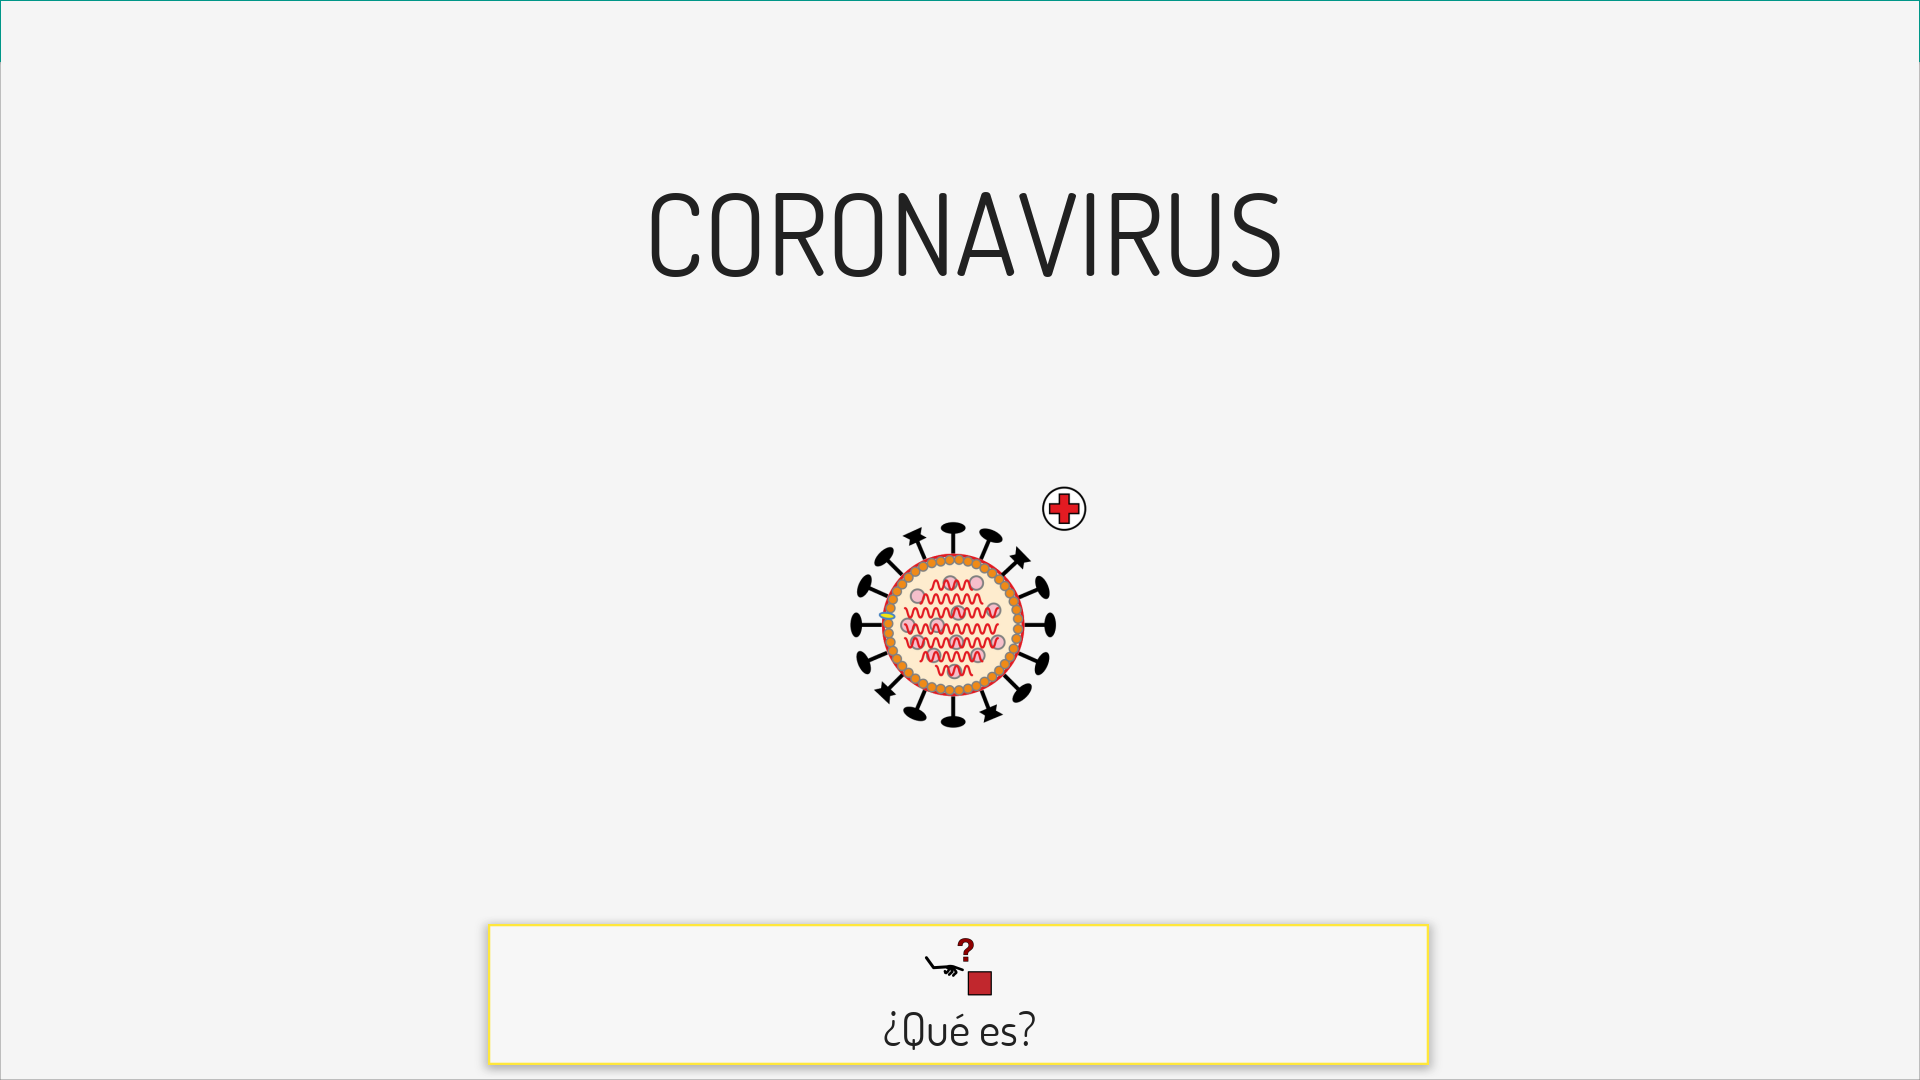 What is the coronavirus?